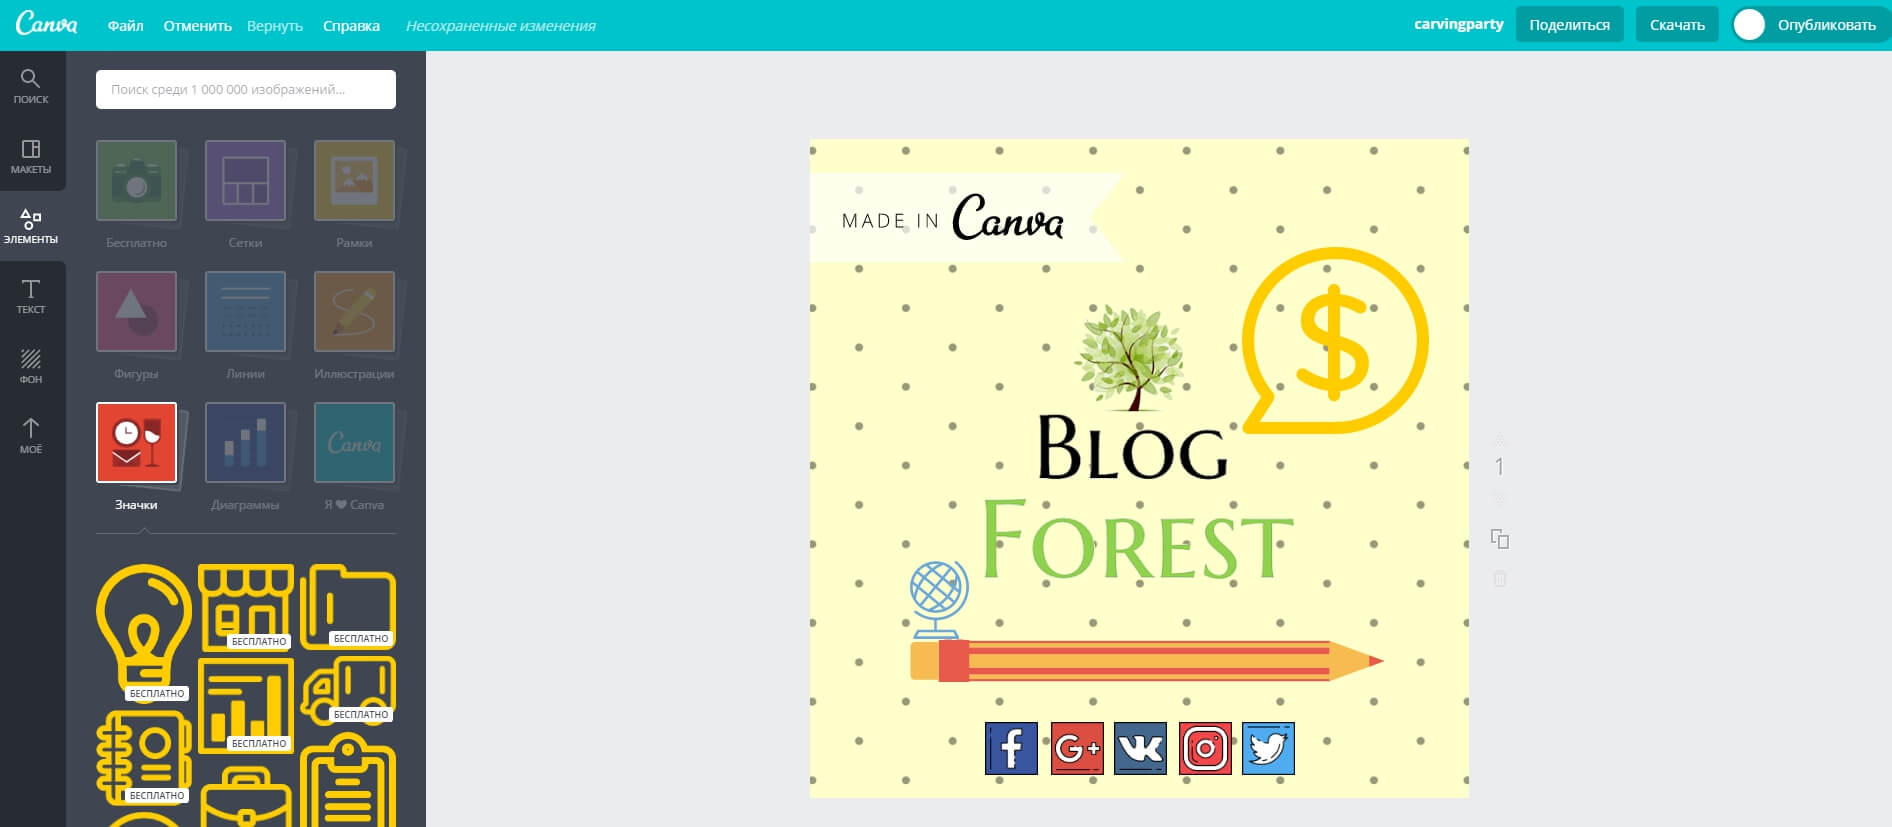 blogforest-canva_redaktor